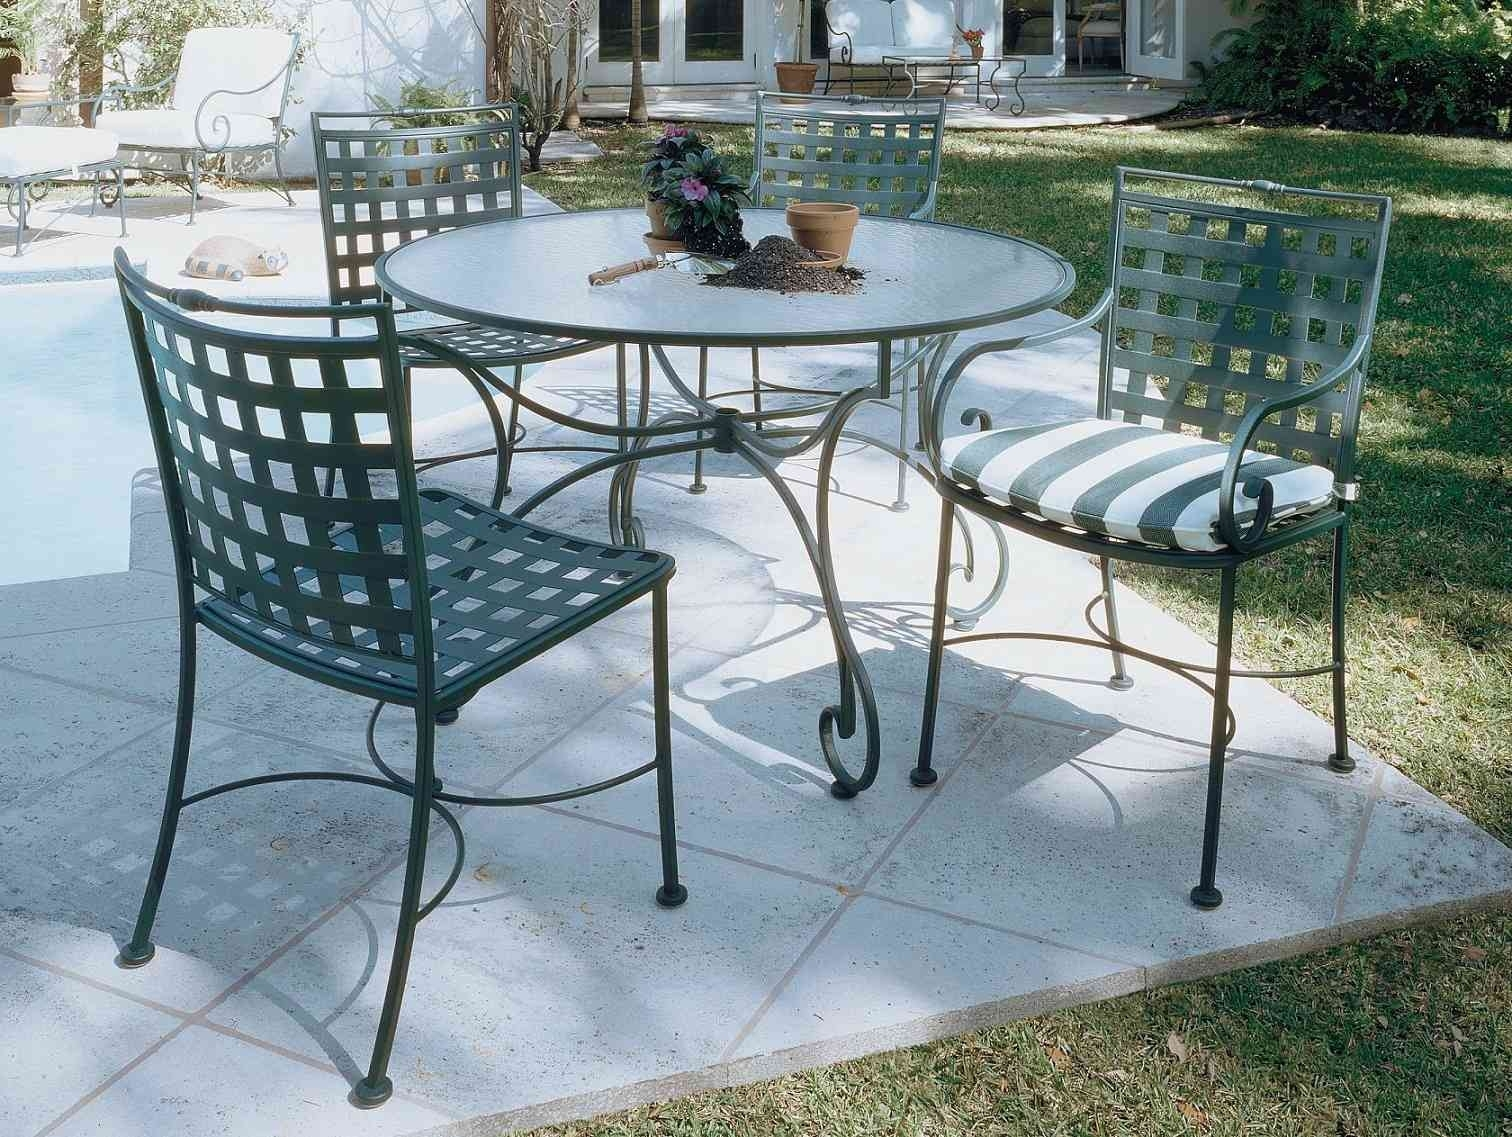 Image of: Your Lawn Home Decor And Design In Commercial Grade Outdoor Furniture